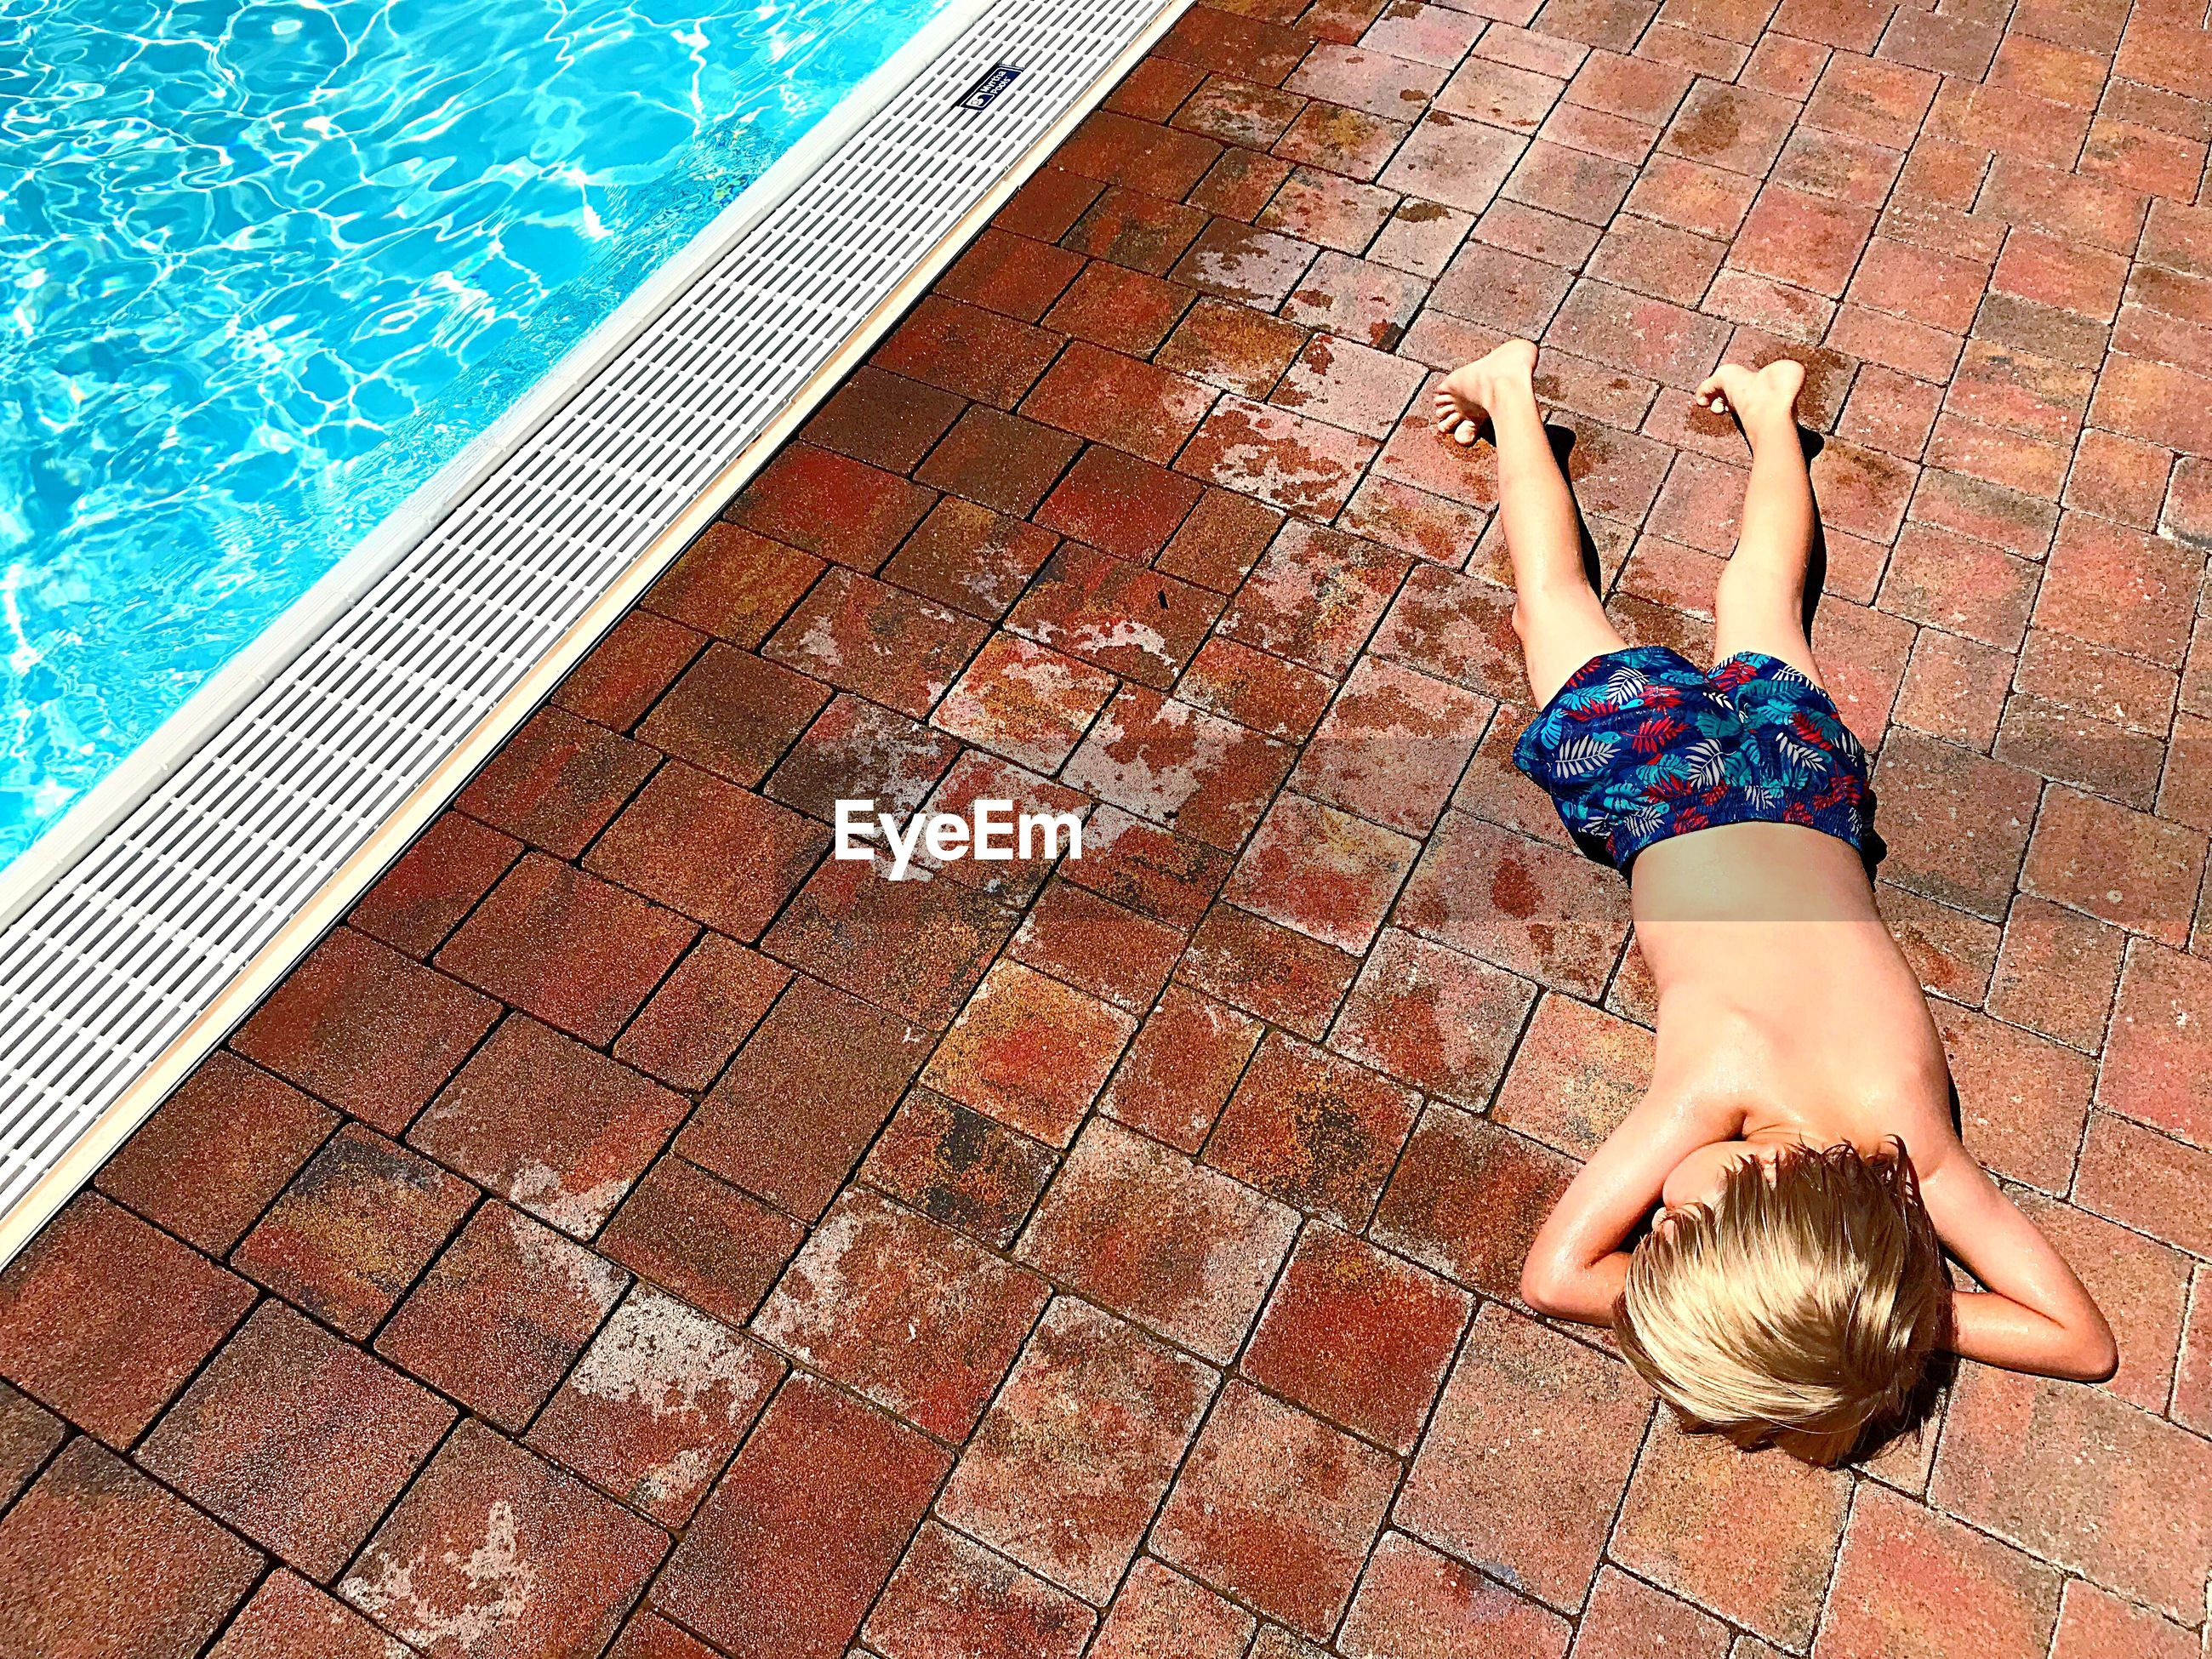 High angle view of shirtless boy relaxing by swimming pool